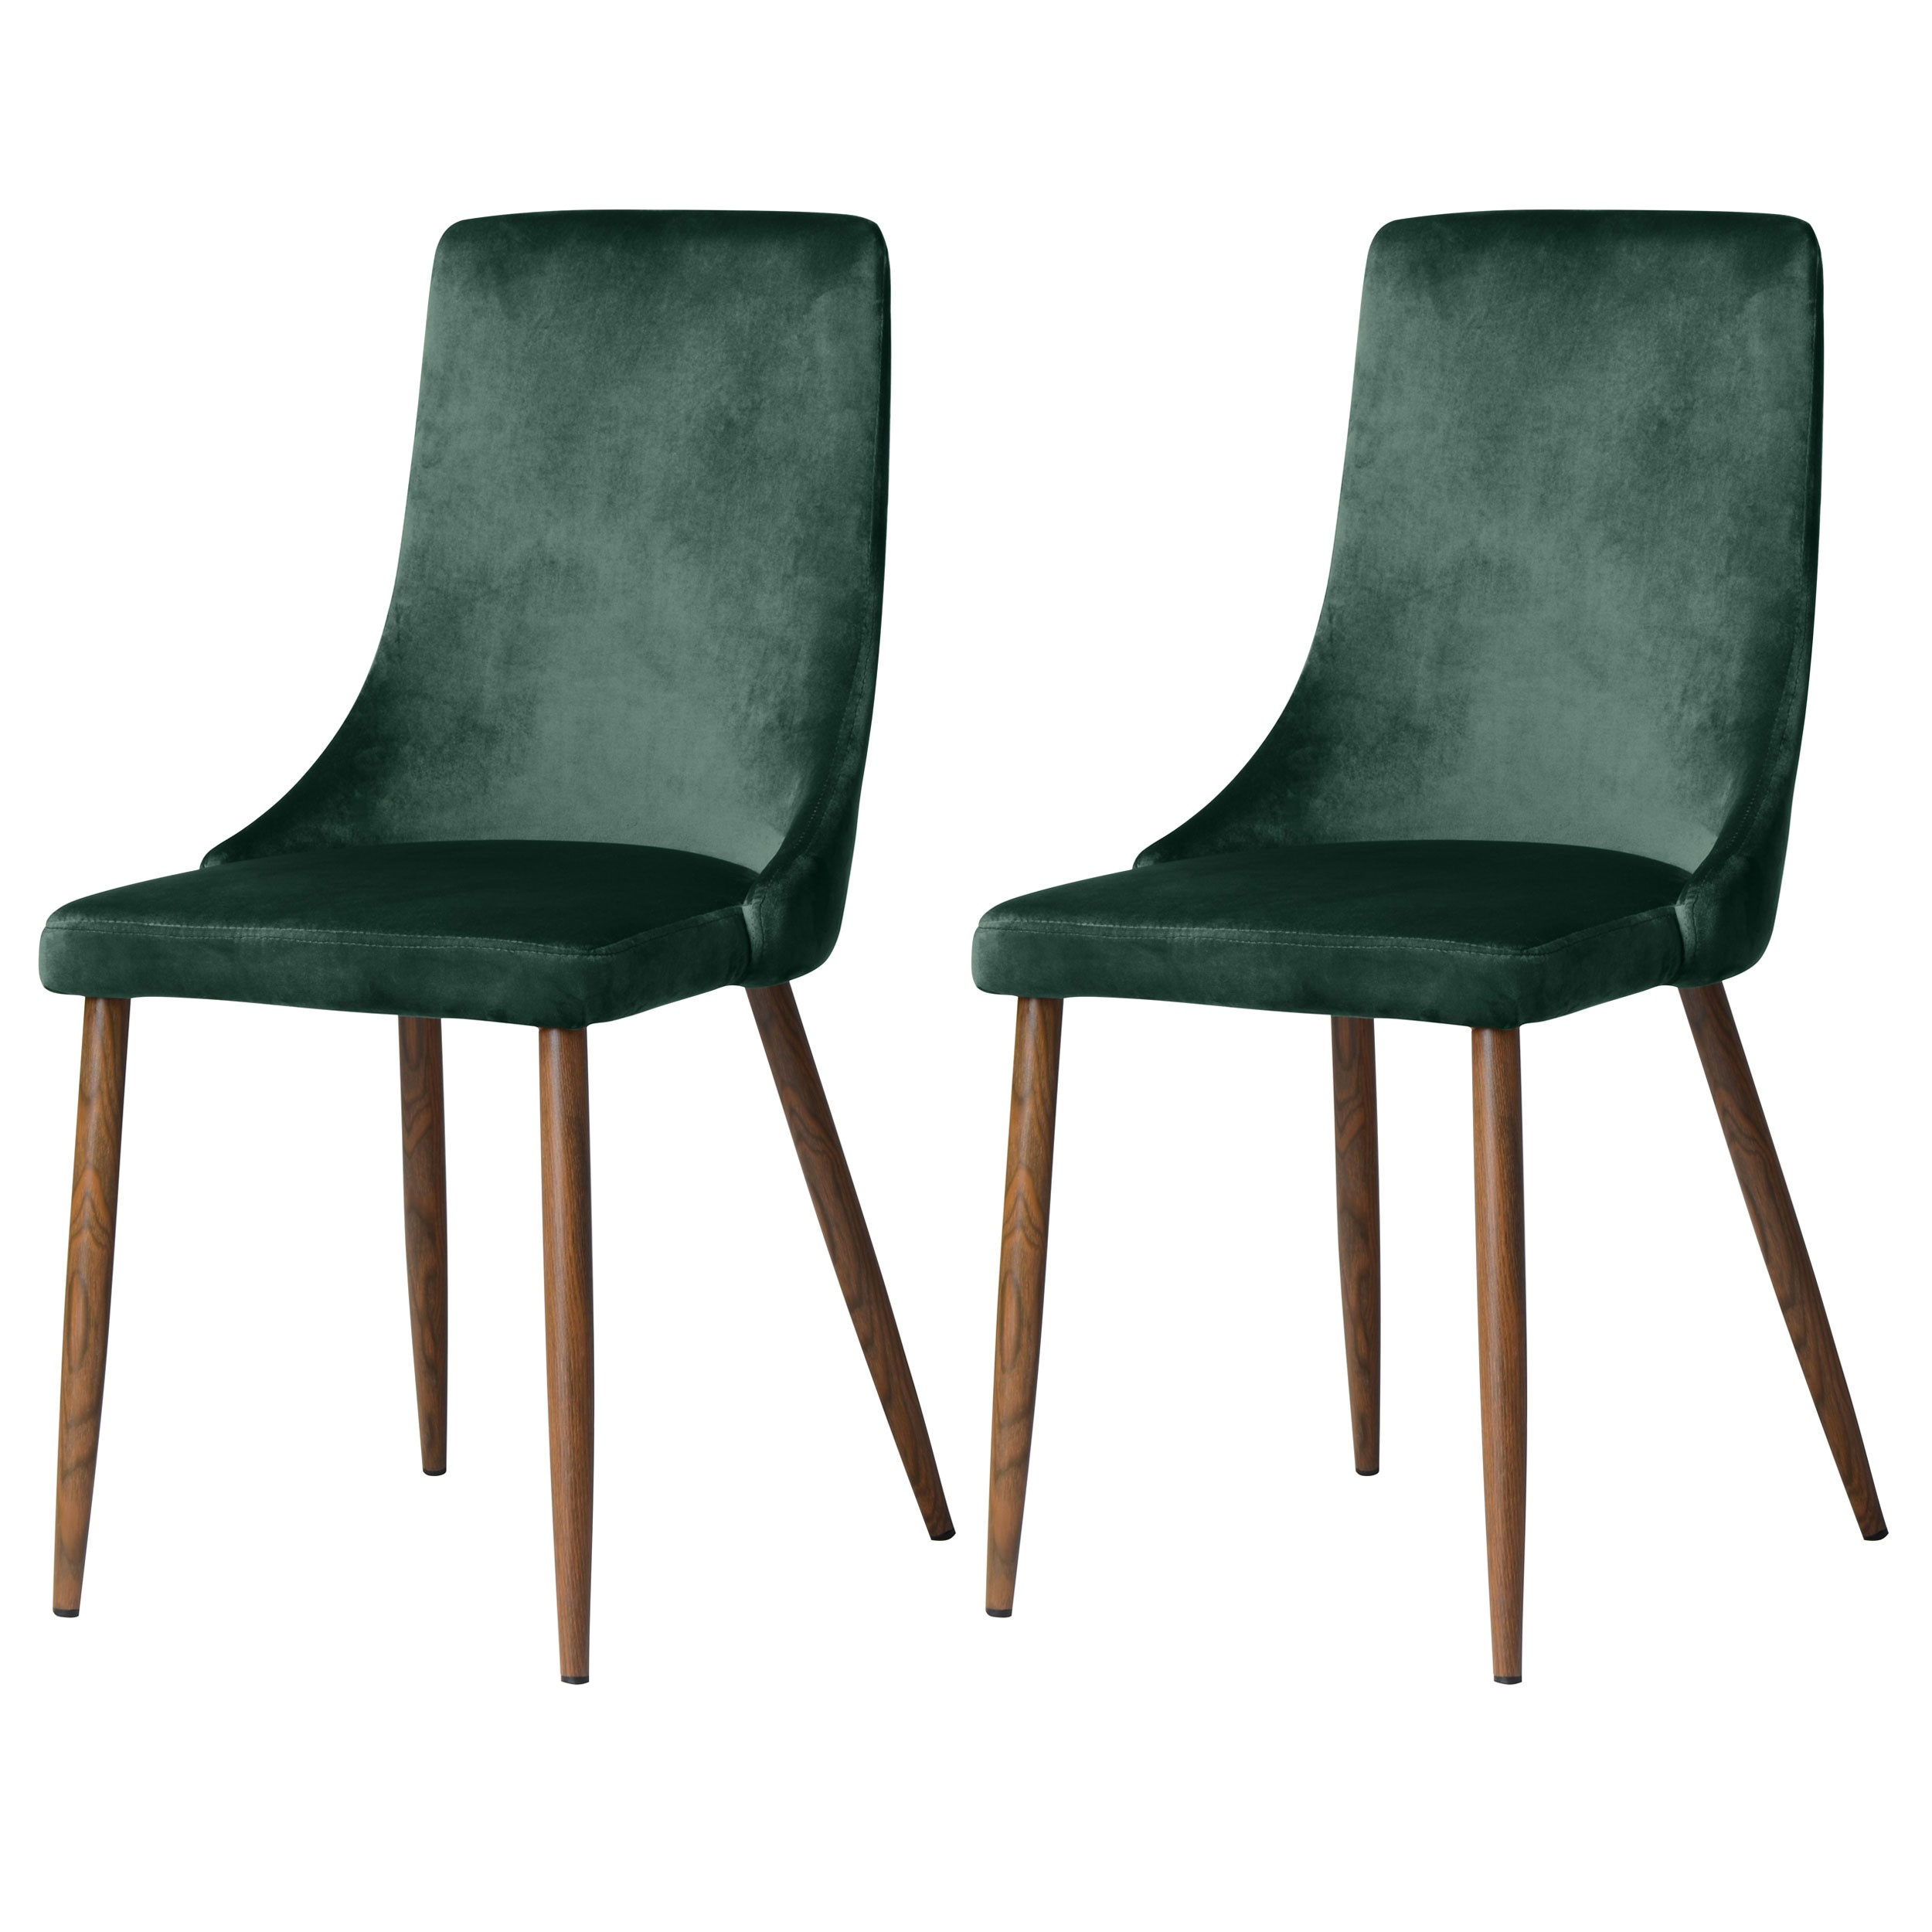 chaise vinni en velours vert lot de 2 commandez nos chaises vinni en velours vert rdv d co. Black Bedroom Furniture Sets. Home Design Ideas